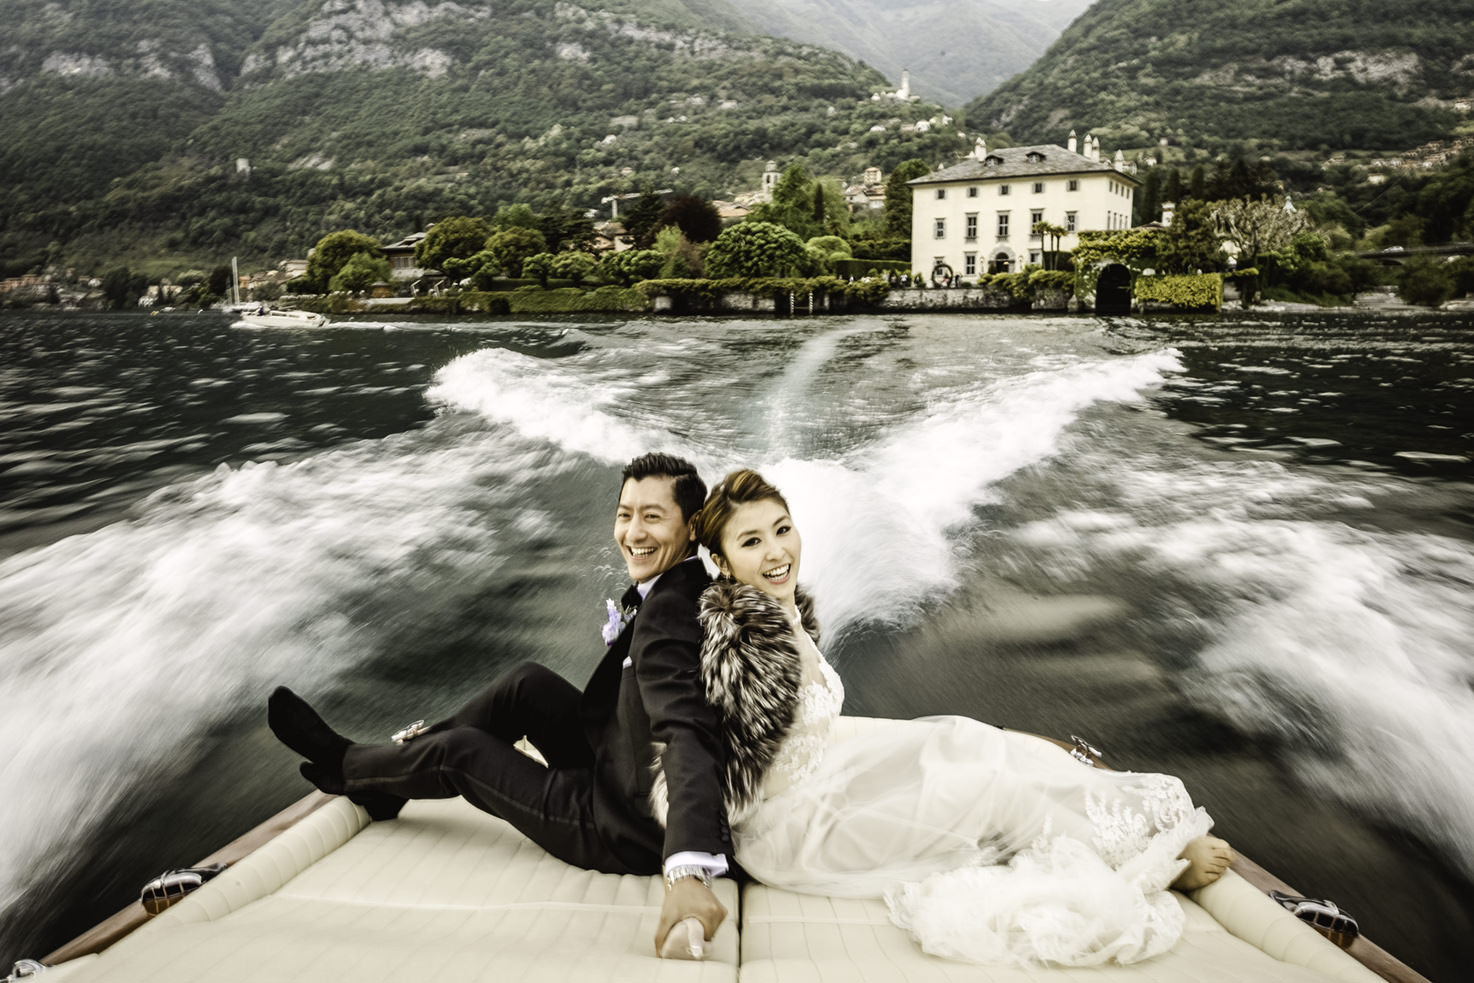 Boat tour for bride and groom on Lake Como